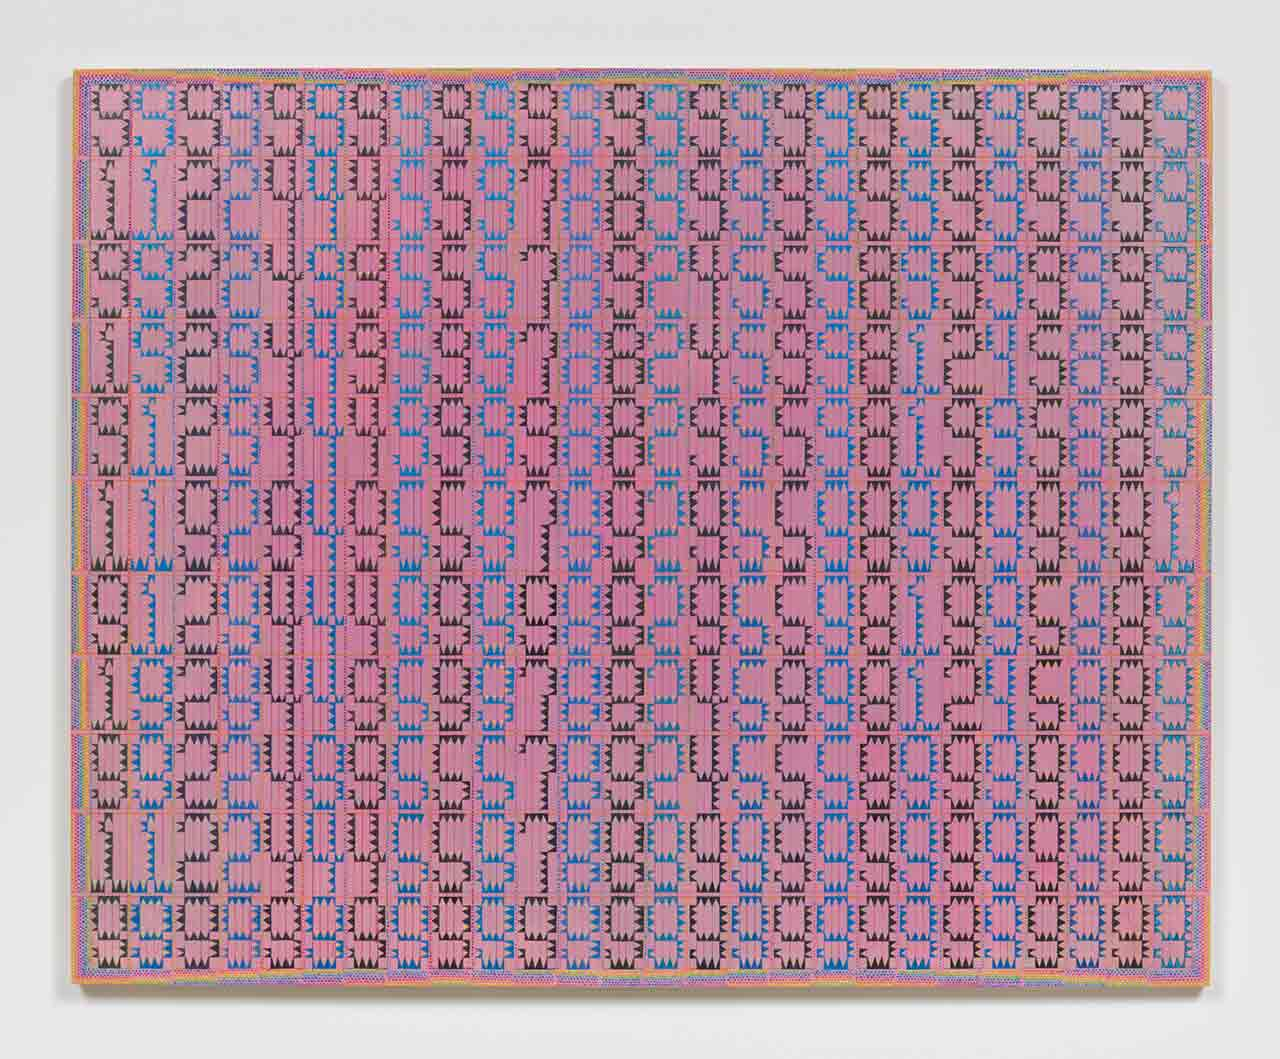 Horizontal pink painting with numbers (Twenty-six 11 digit prime palindromes arranged in columns selected from a group of 42,100)